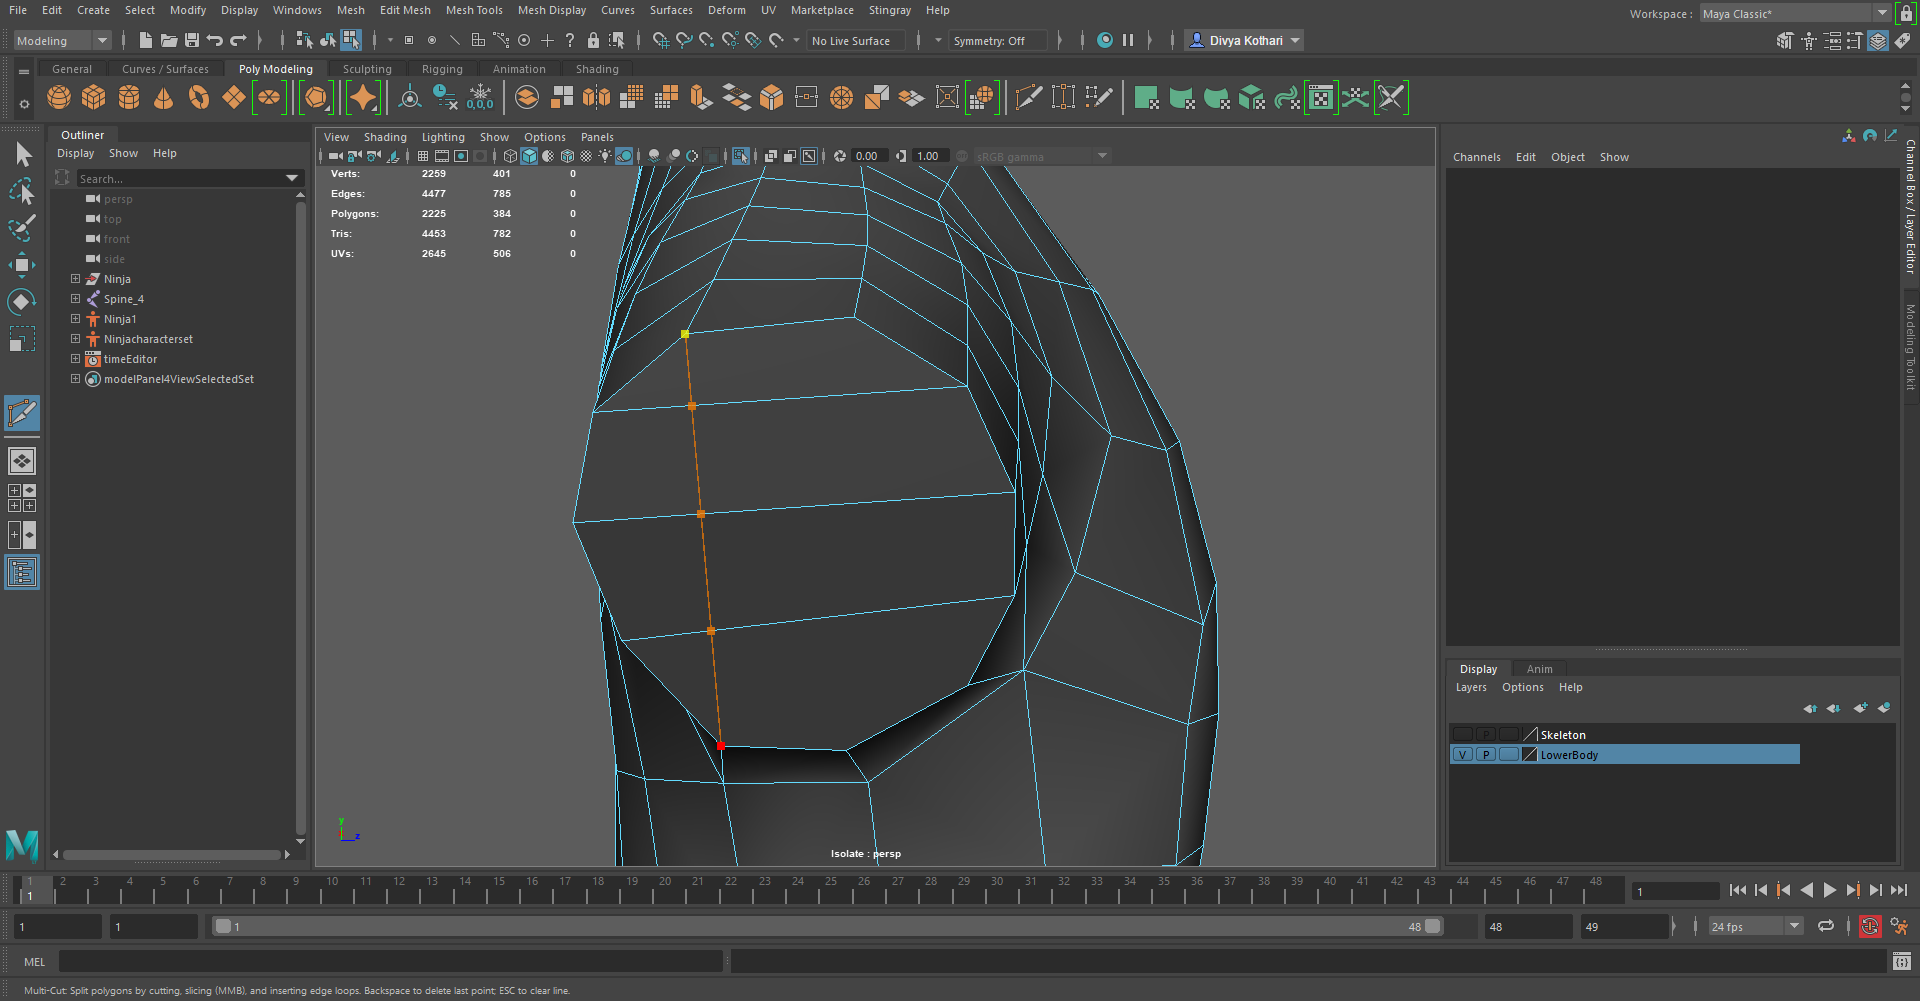 How to create an edge between two vertices? - Autodesk Community- Maya